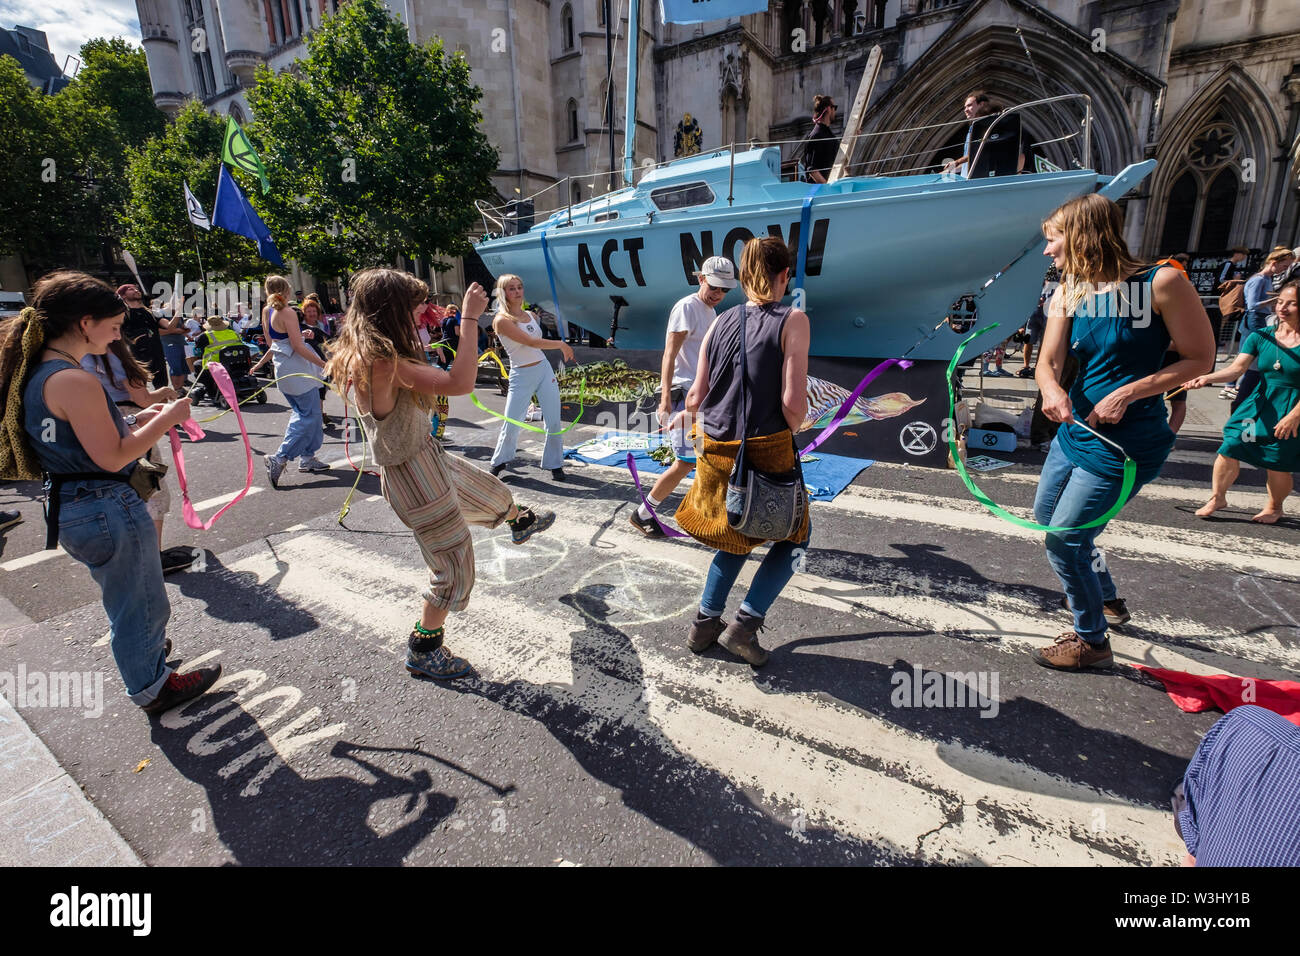 London, UK. 15th July 2019. People dance as Extinction Rebellion begins another series of protests in five major cities against the criminal inaction by the government on climate and ecological collapse. The protesters brought a yacht named after Polly Higgins who fought for years for an Ecocide Law to the Royal Courts of Justice and continued her fight blocking the Strand all day with performances, discussions, speeches, music and ceremonies in front of the yacht. Peter Marshall/Alamy Live News - Stock Image